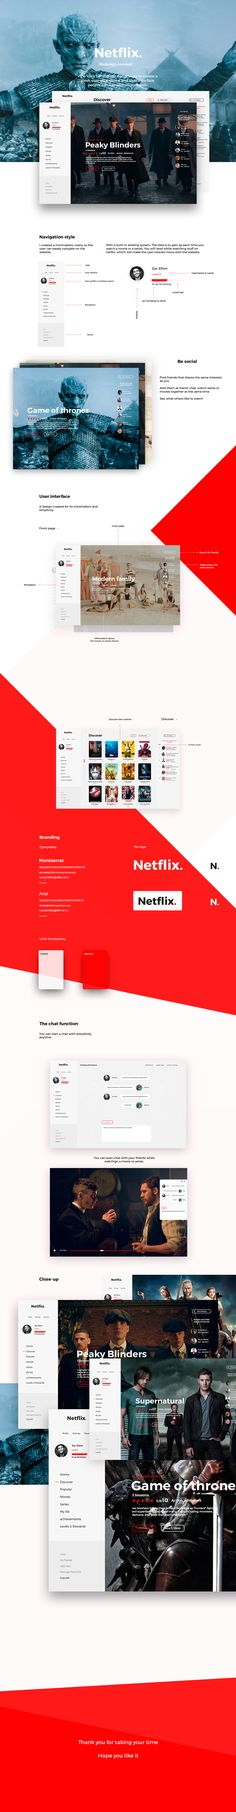 Netflix Redesign - Student Project